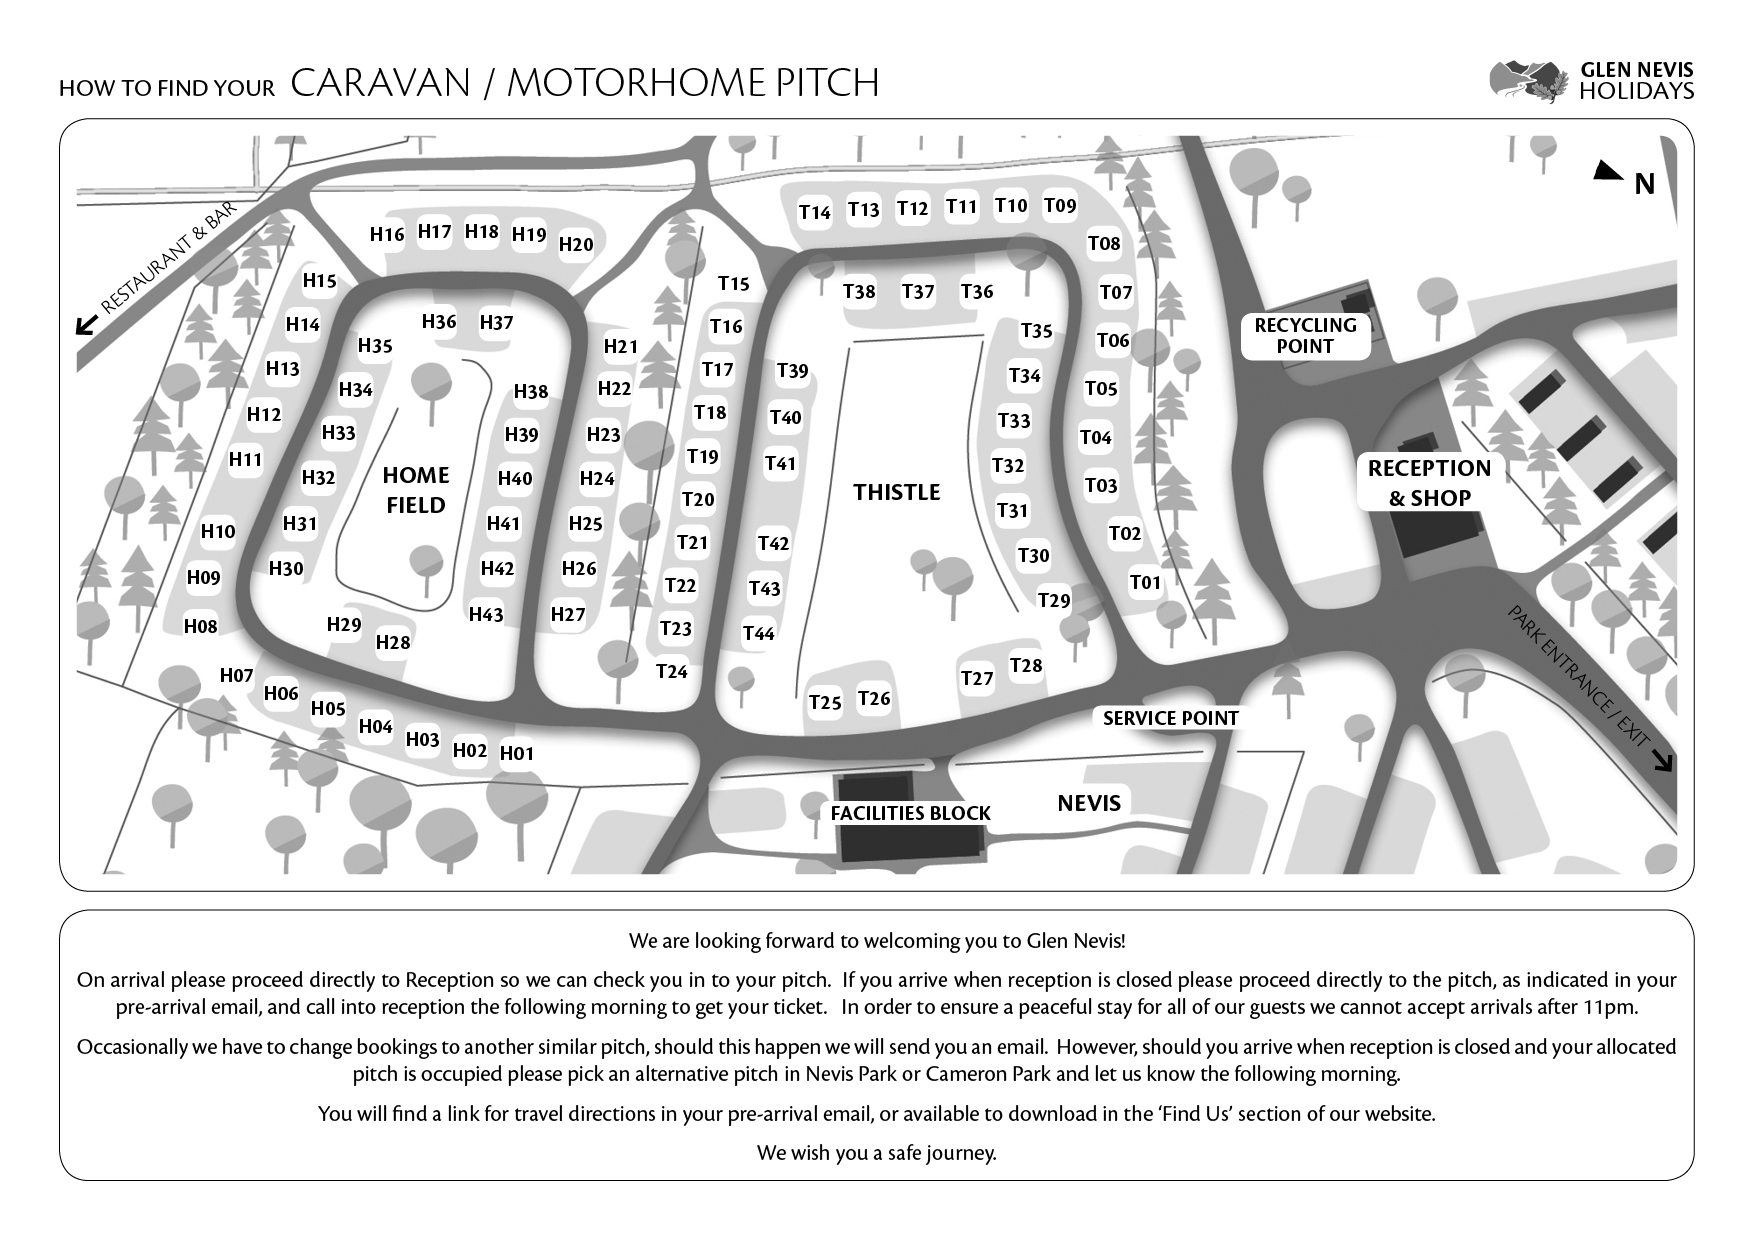 GNH-Map-Pitches-Caravans.jpg